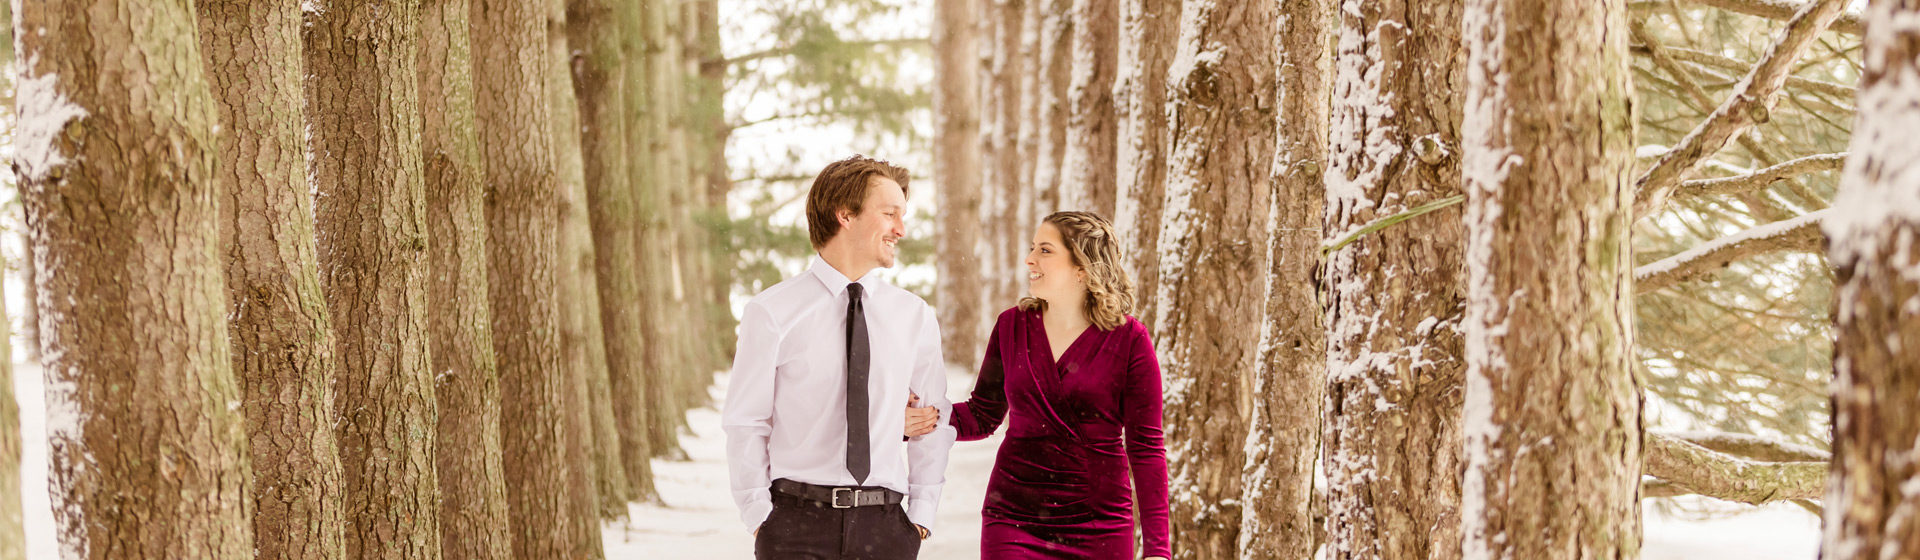 Engaged couple walking through a pine forest